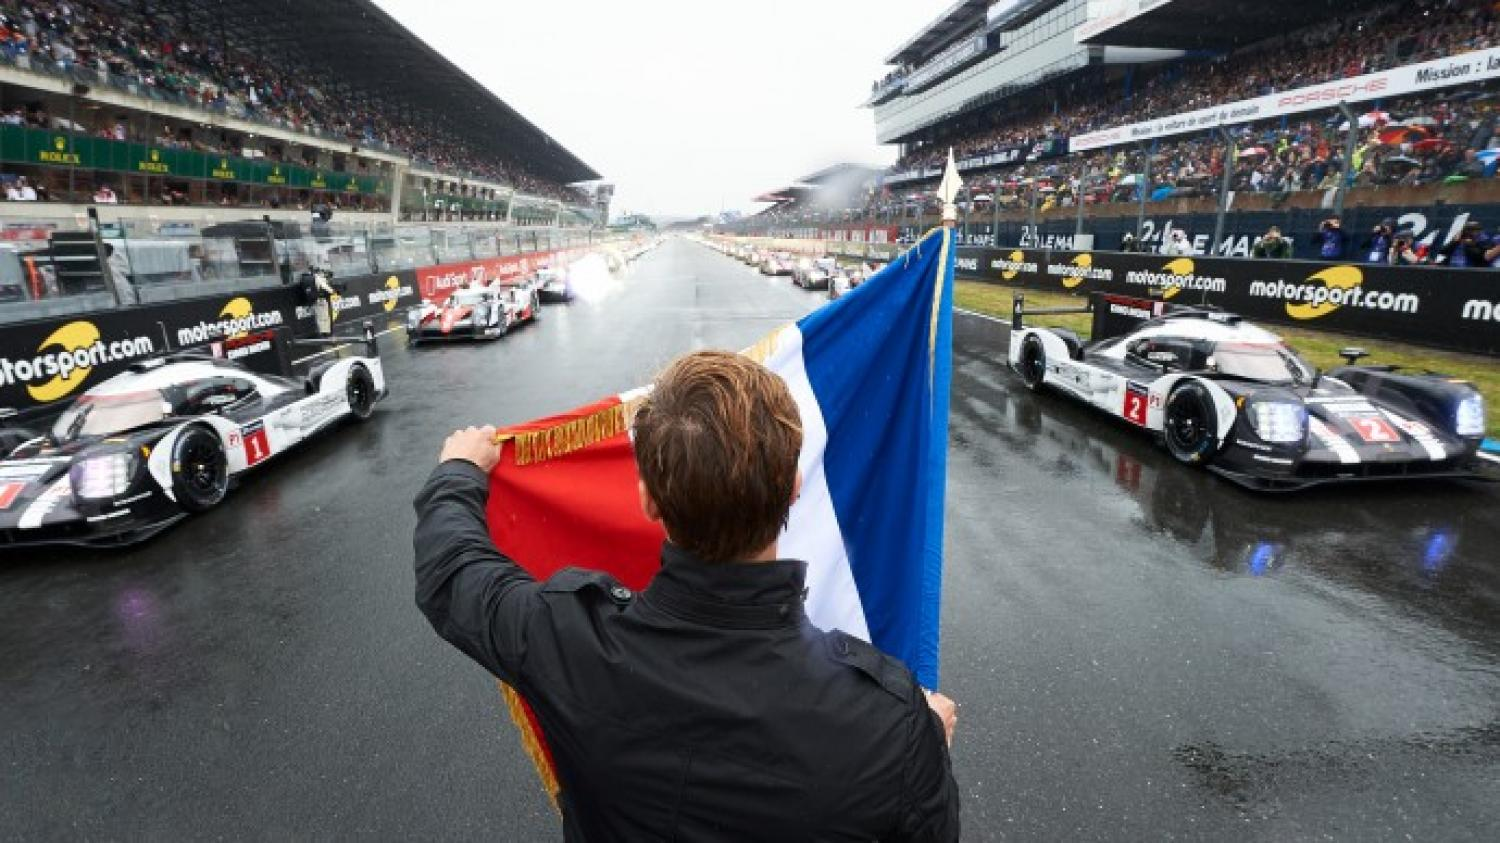 The flag has gone down to start the 24 Hours of Le Mans!